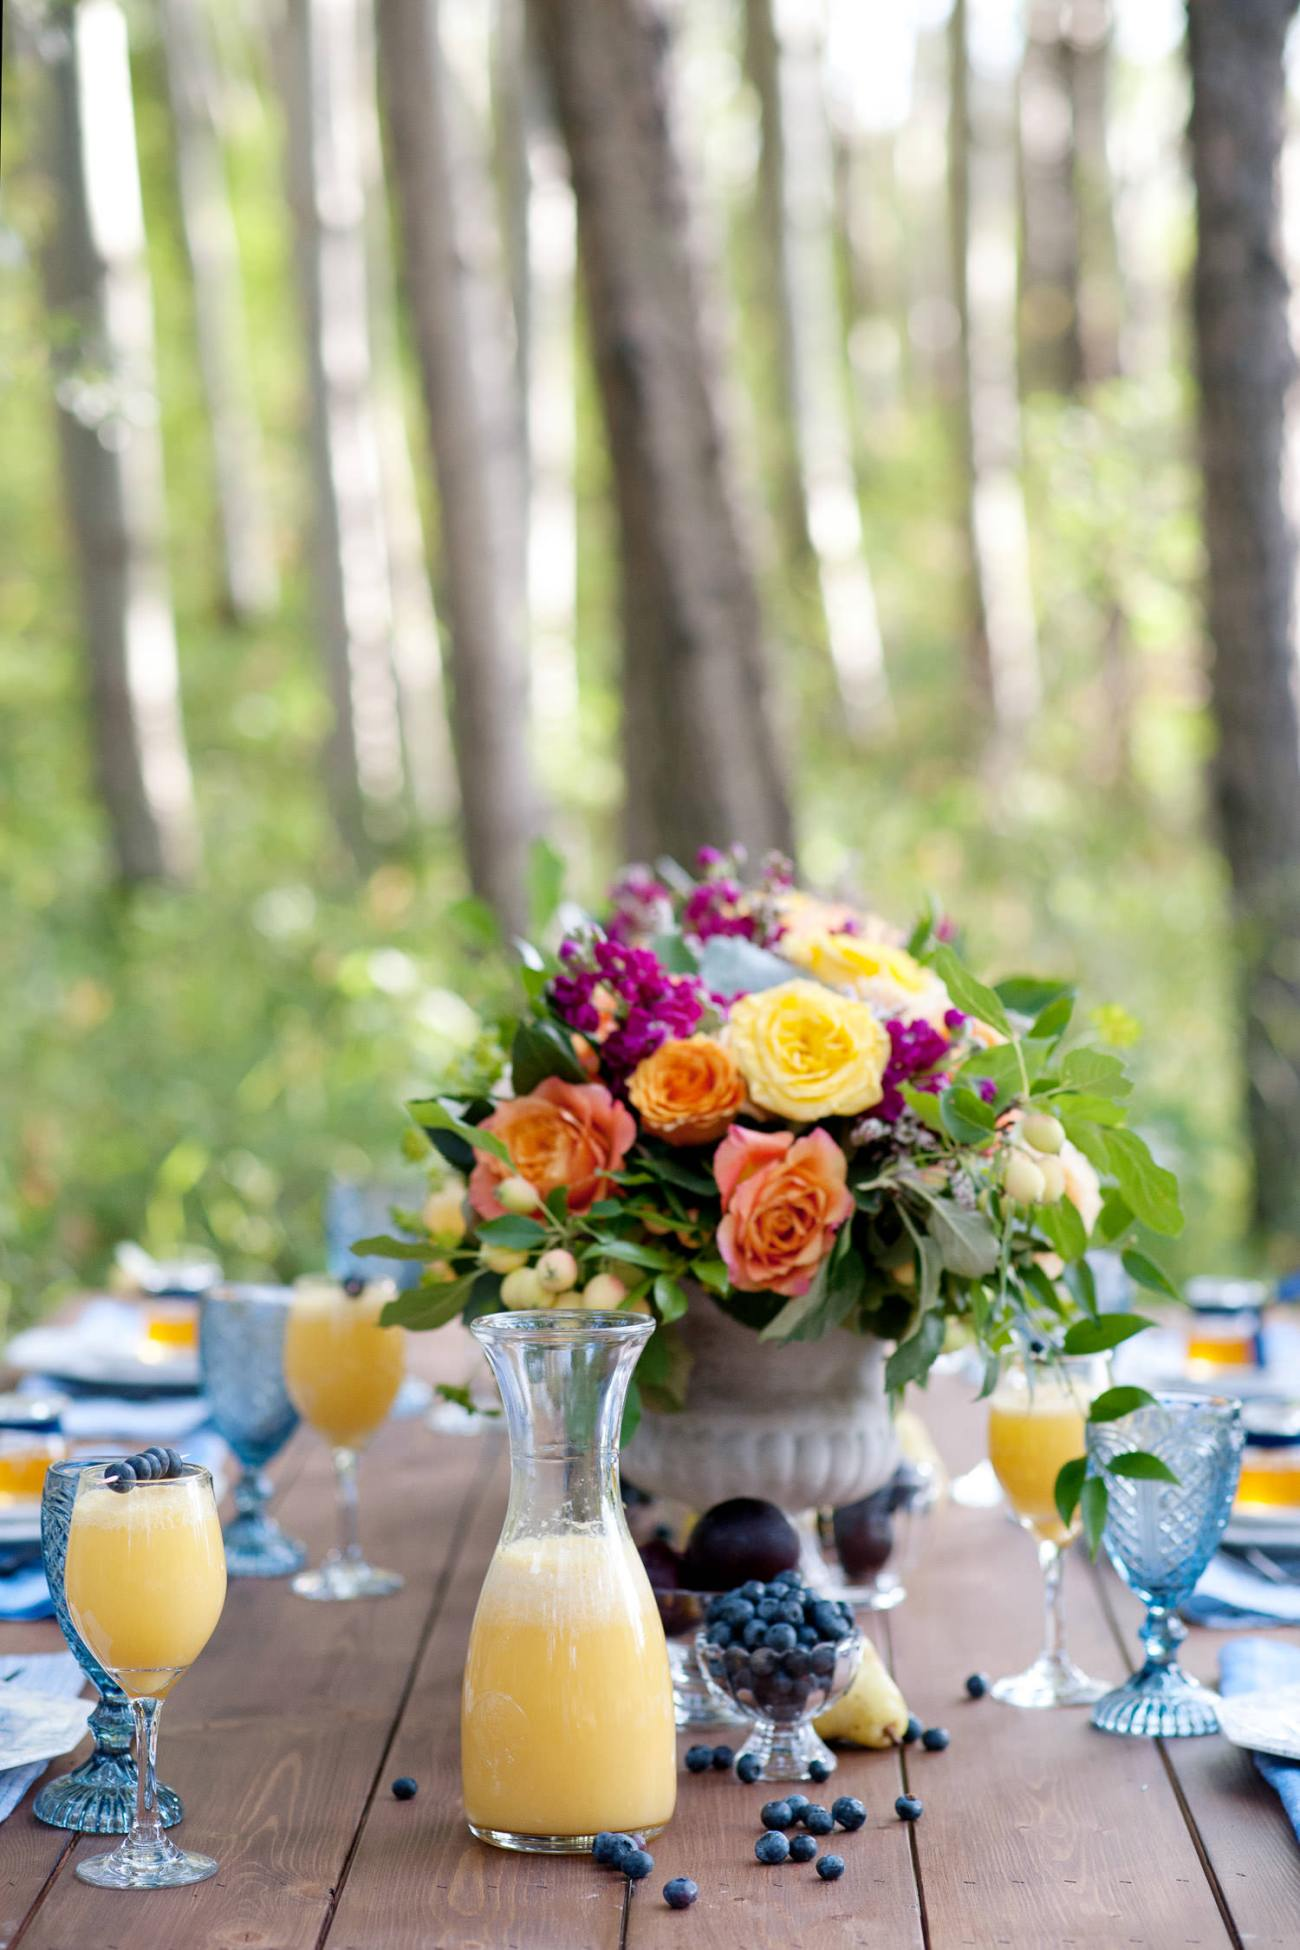 Mimosas on a tabletop for a brunch wedding captured by Tara Whittaker Photography